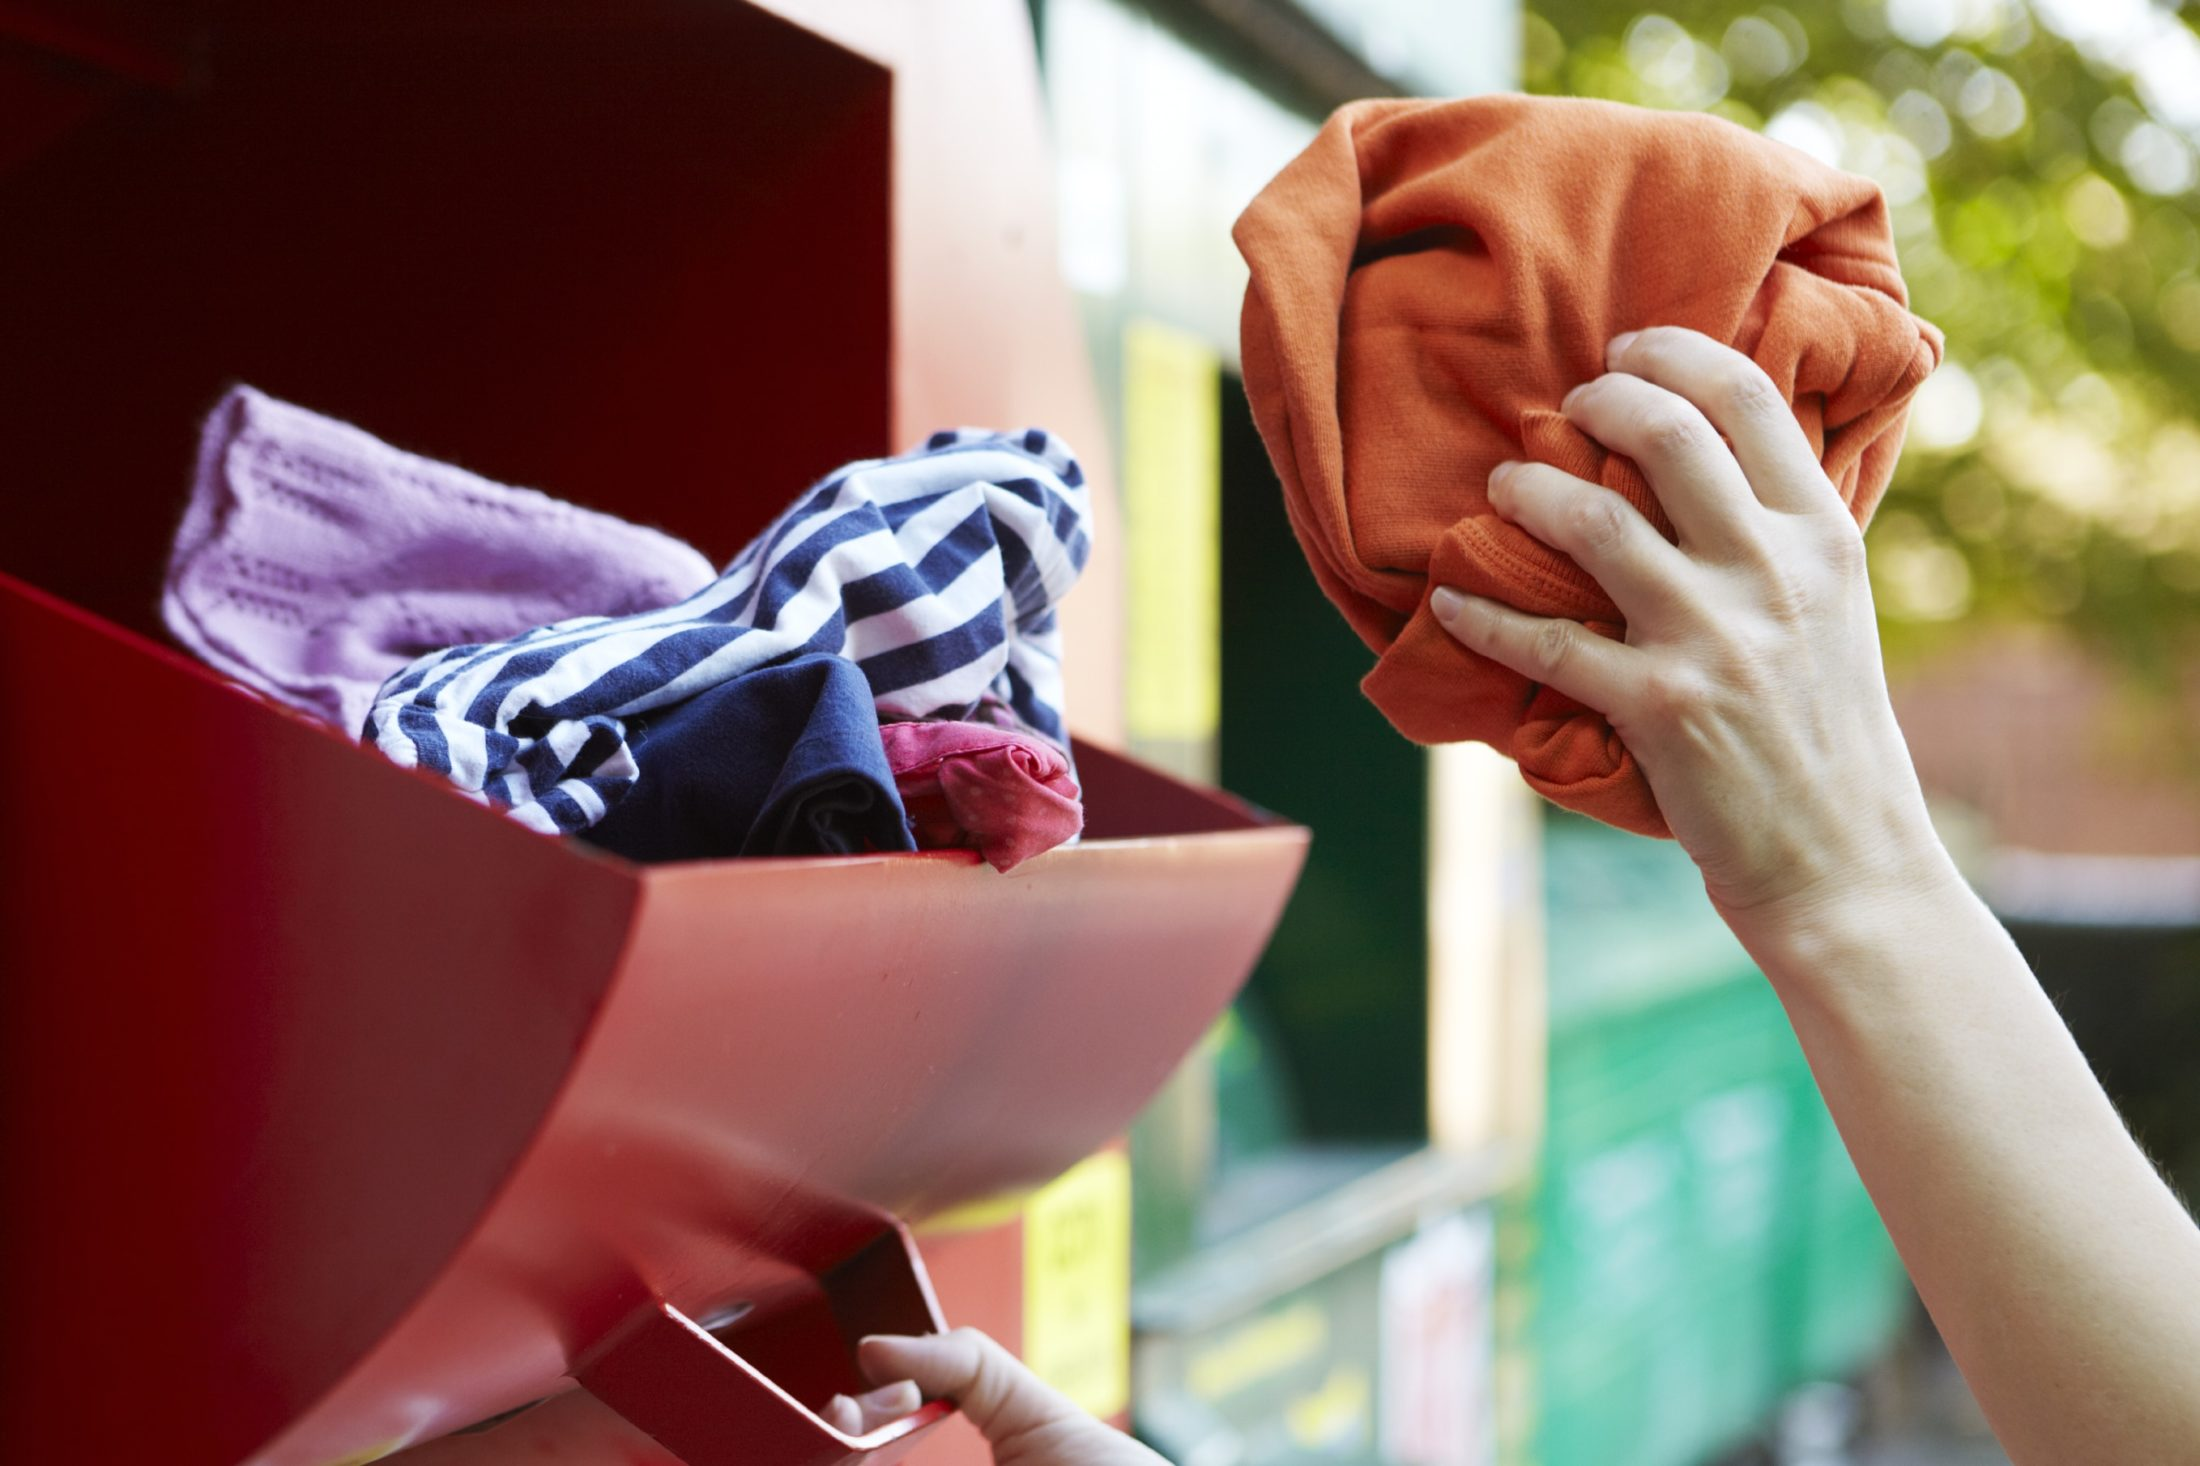 SCARCE on How to Keep Clothes & Textiles Out of Landfills